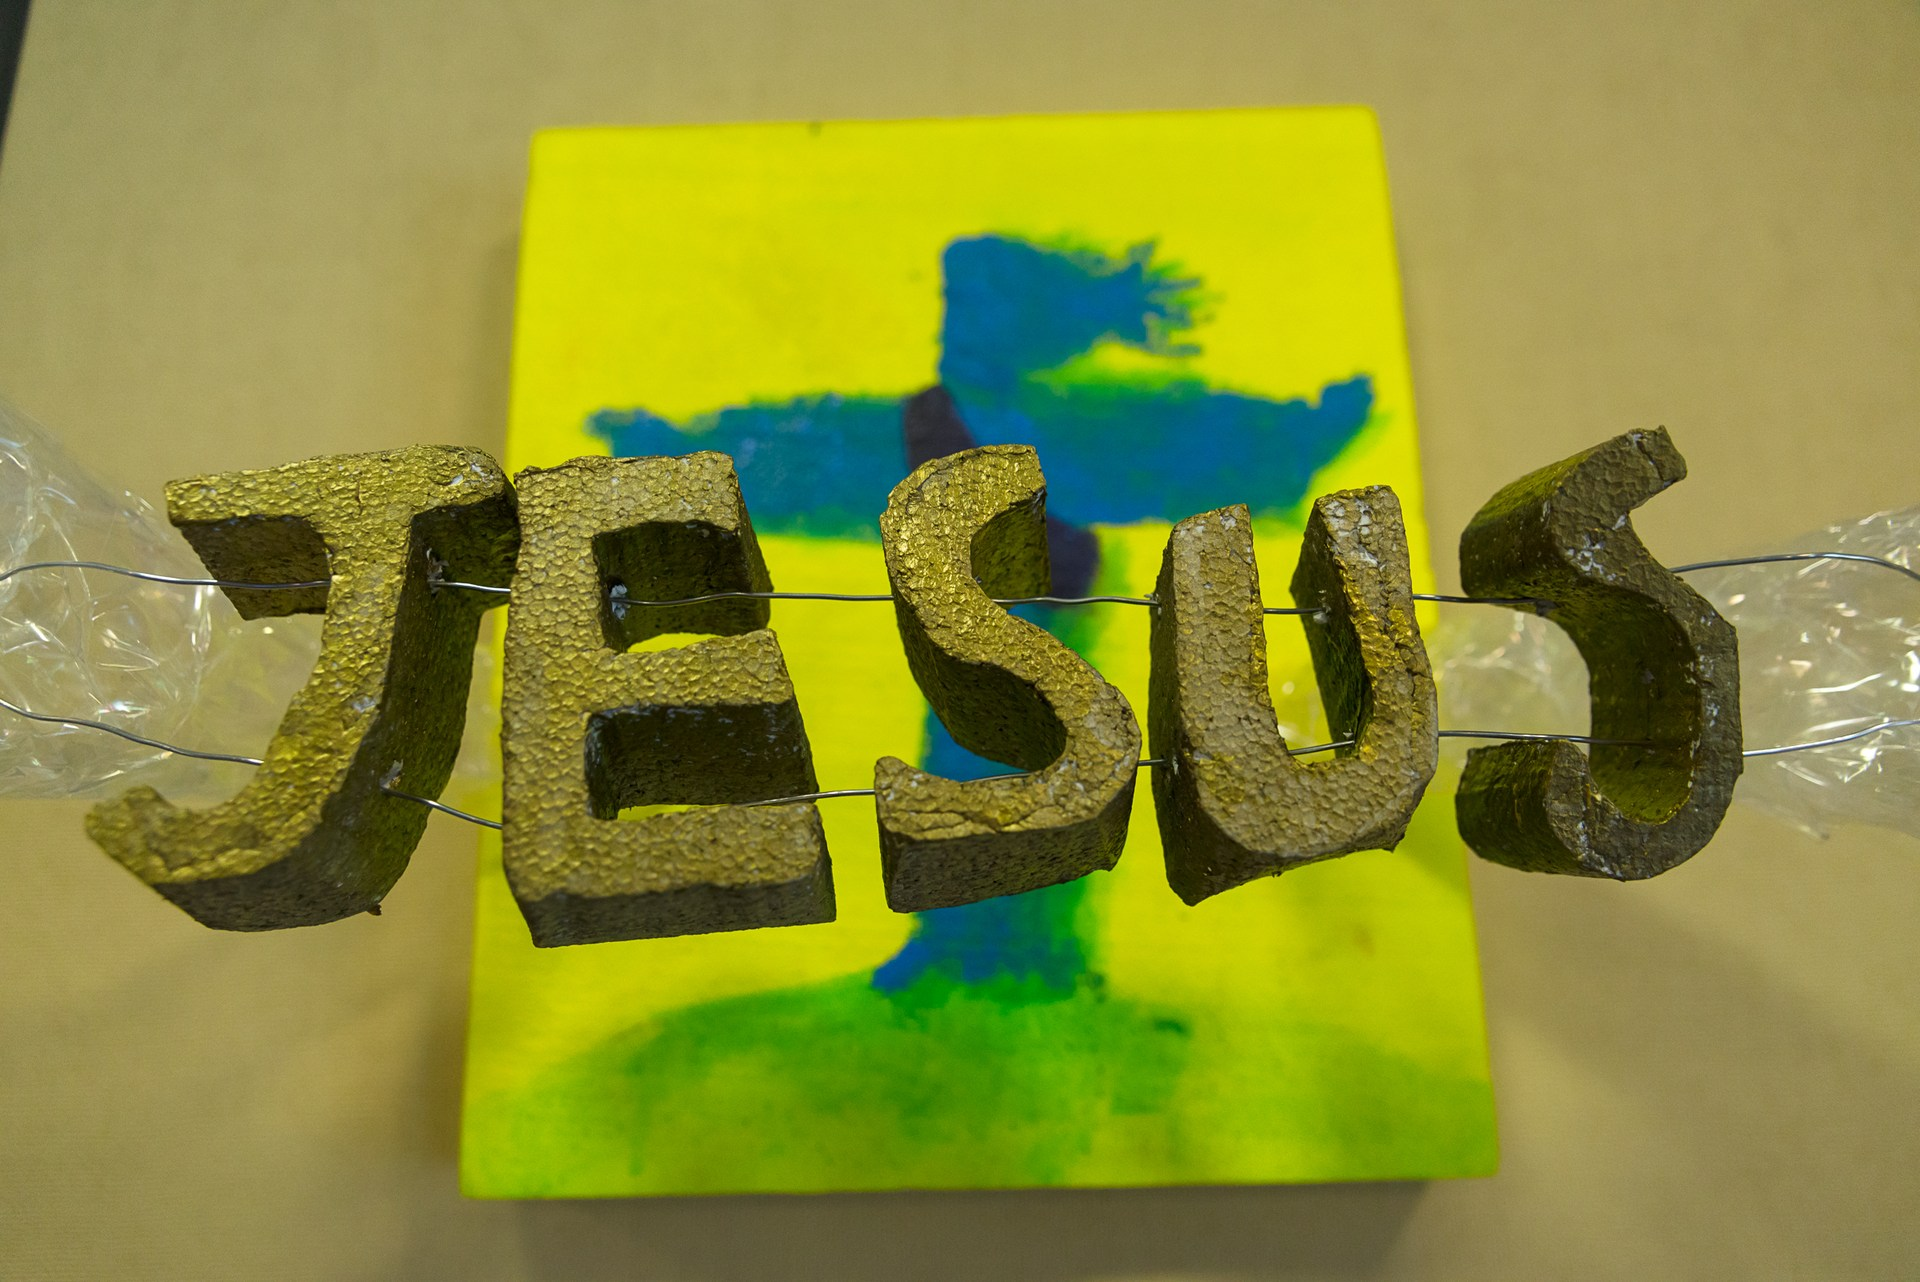 three dimensional 'Jesus' name